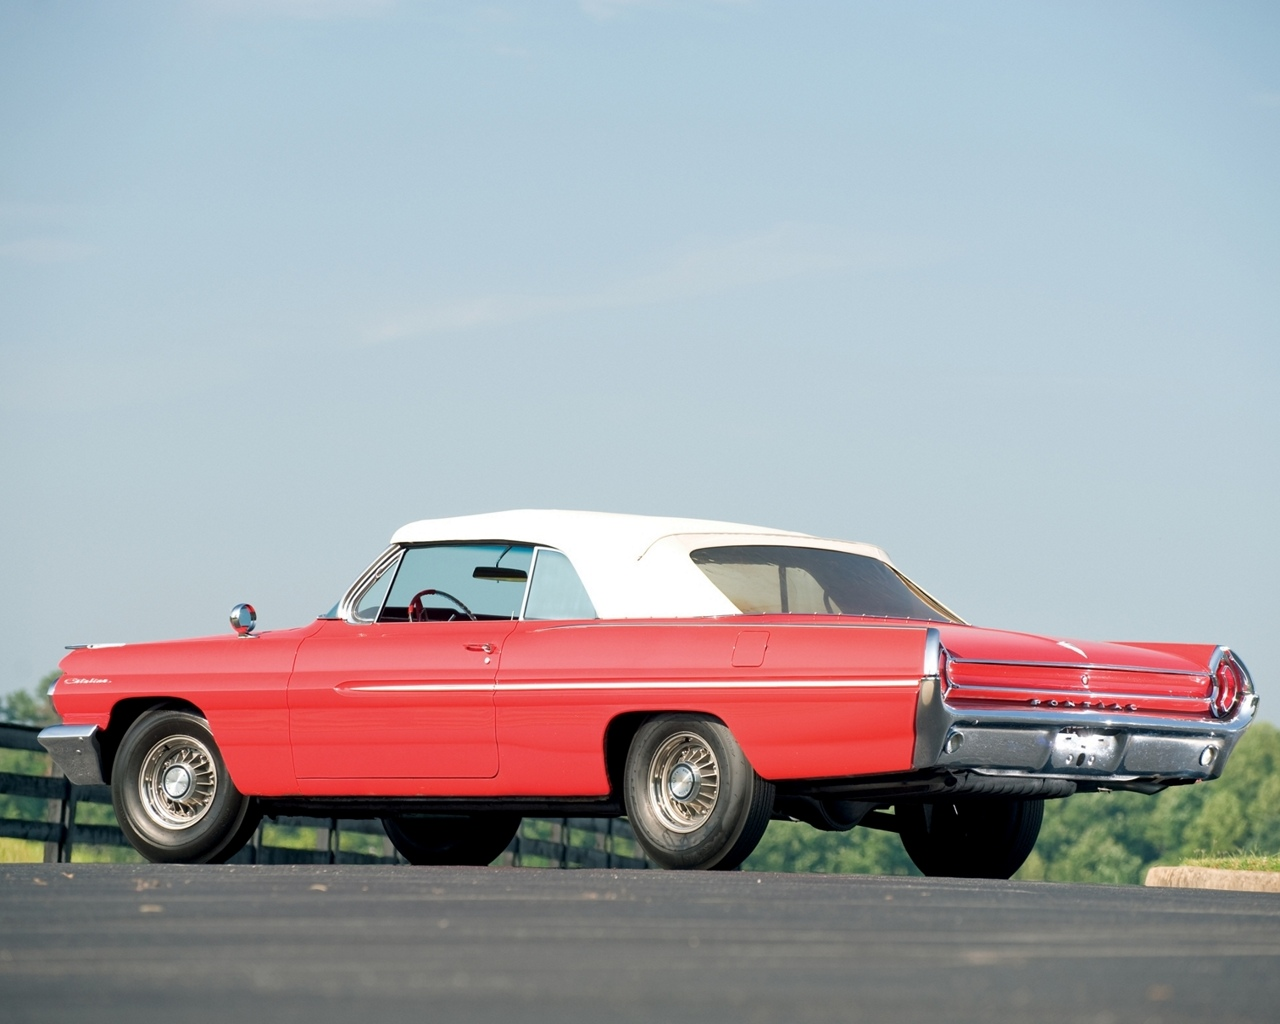 44 hd wallpapers classic cars on wallpapersafari - Old american cars wallpapers ...